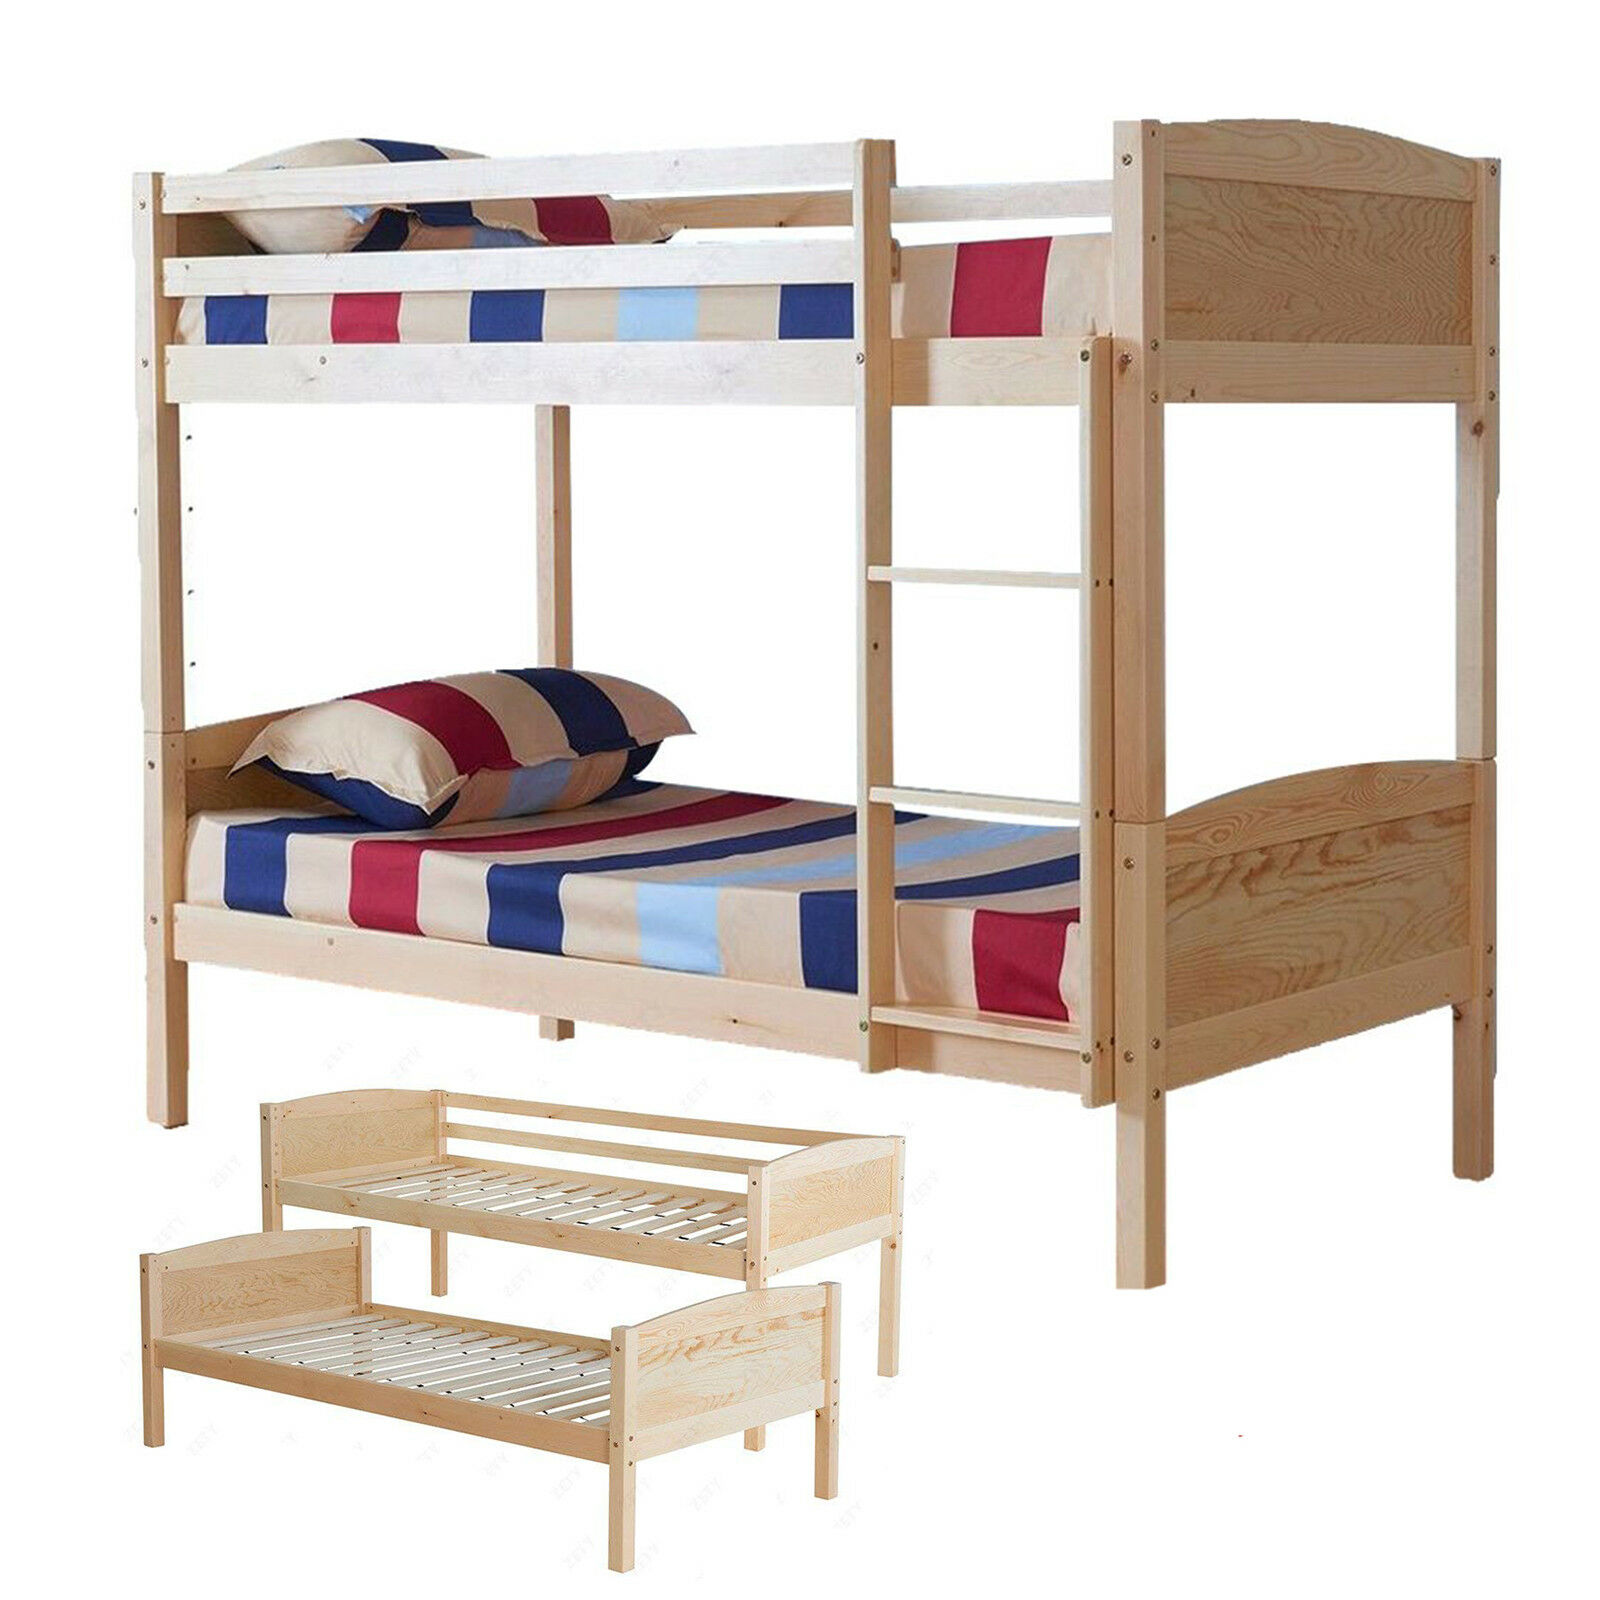 Z Beds For Adults Details About 3ft Single Pine Wood Bunk Bed Frame Separate Into 2 Single Beds For Kids Adults